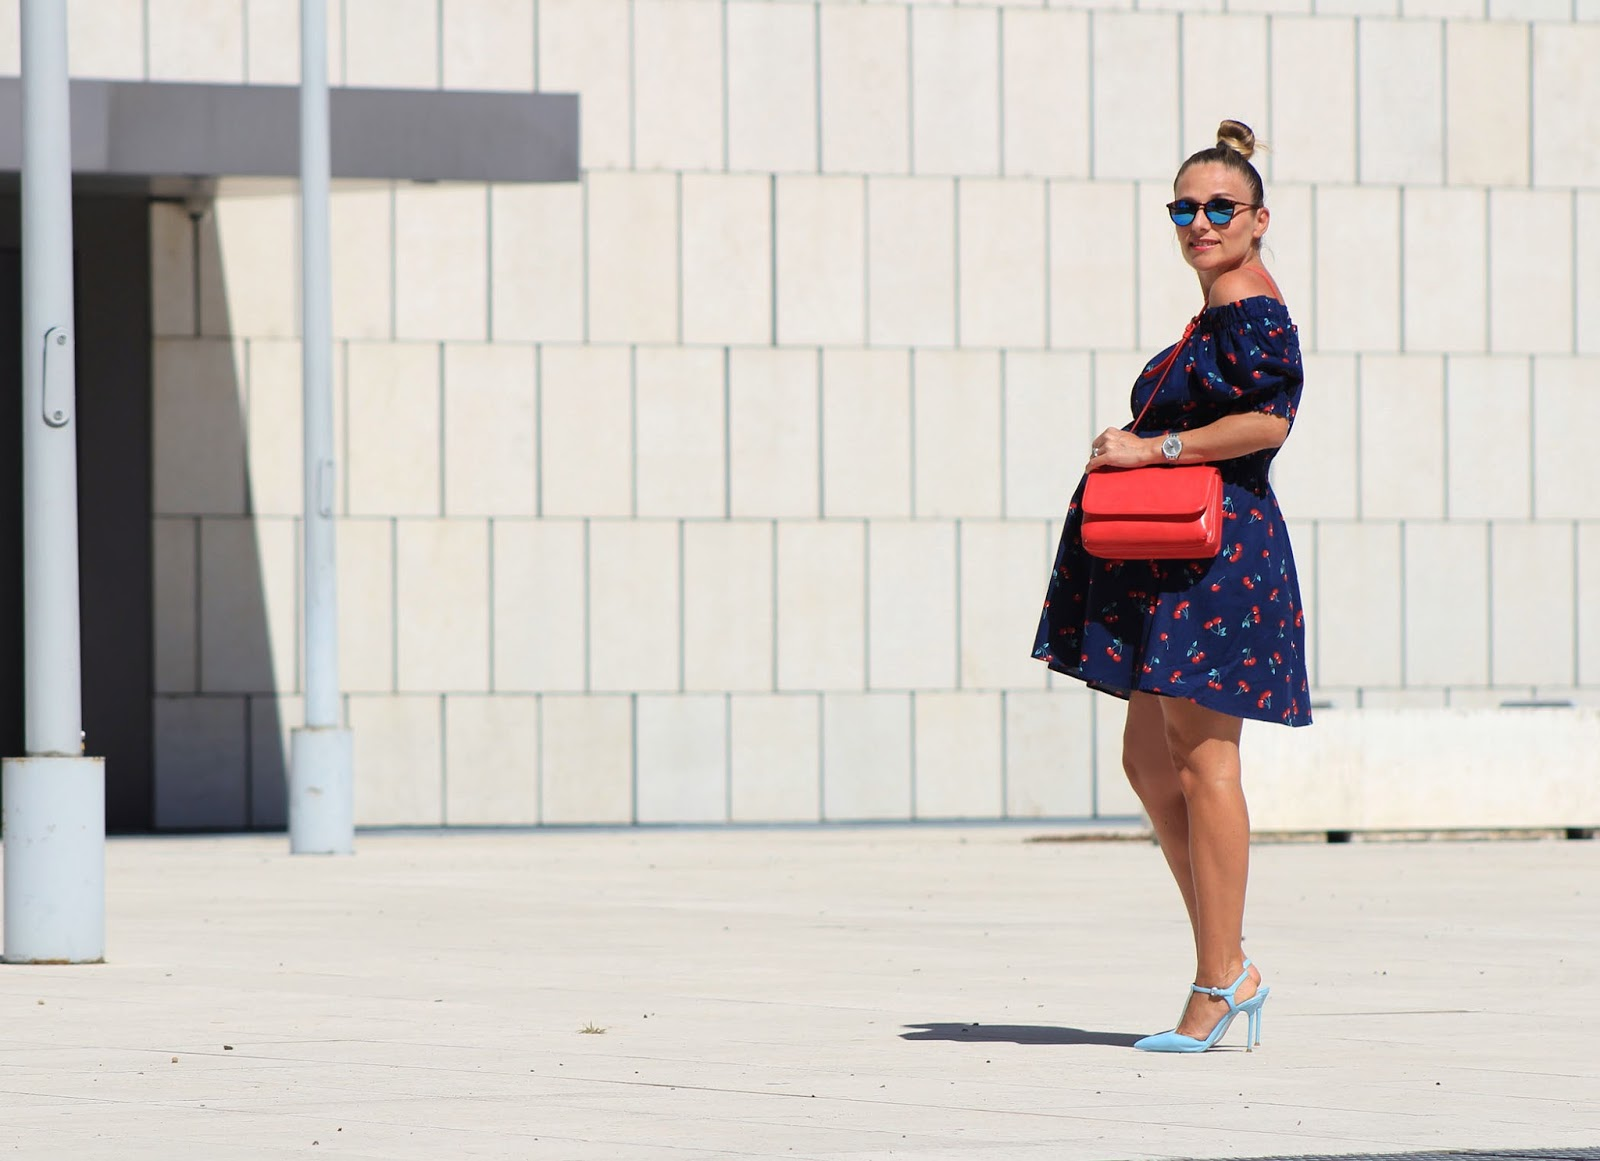 How to wear a cherry dress - Eniwhere Fashion - Rosegal